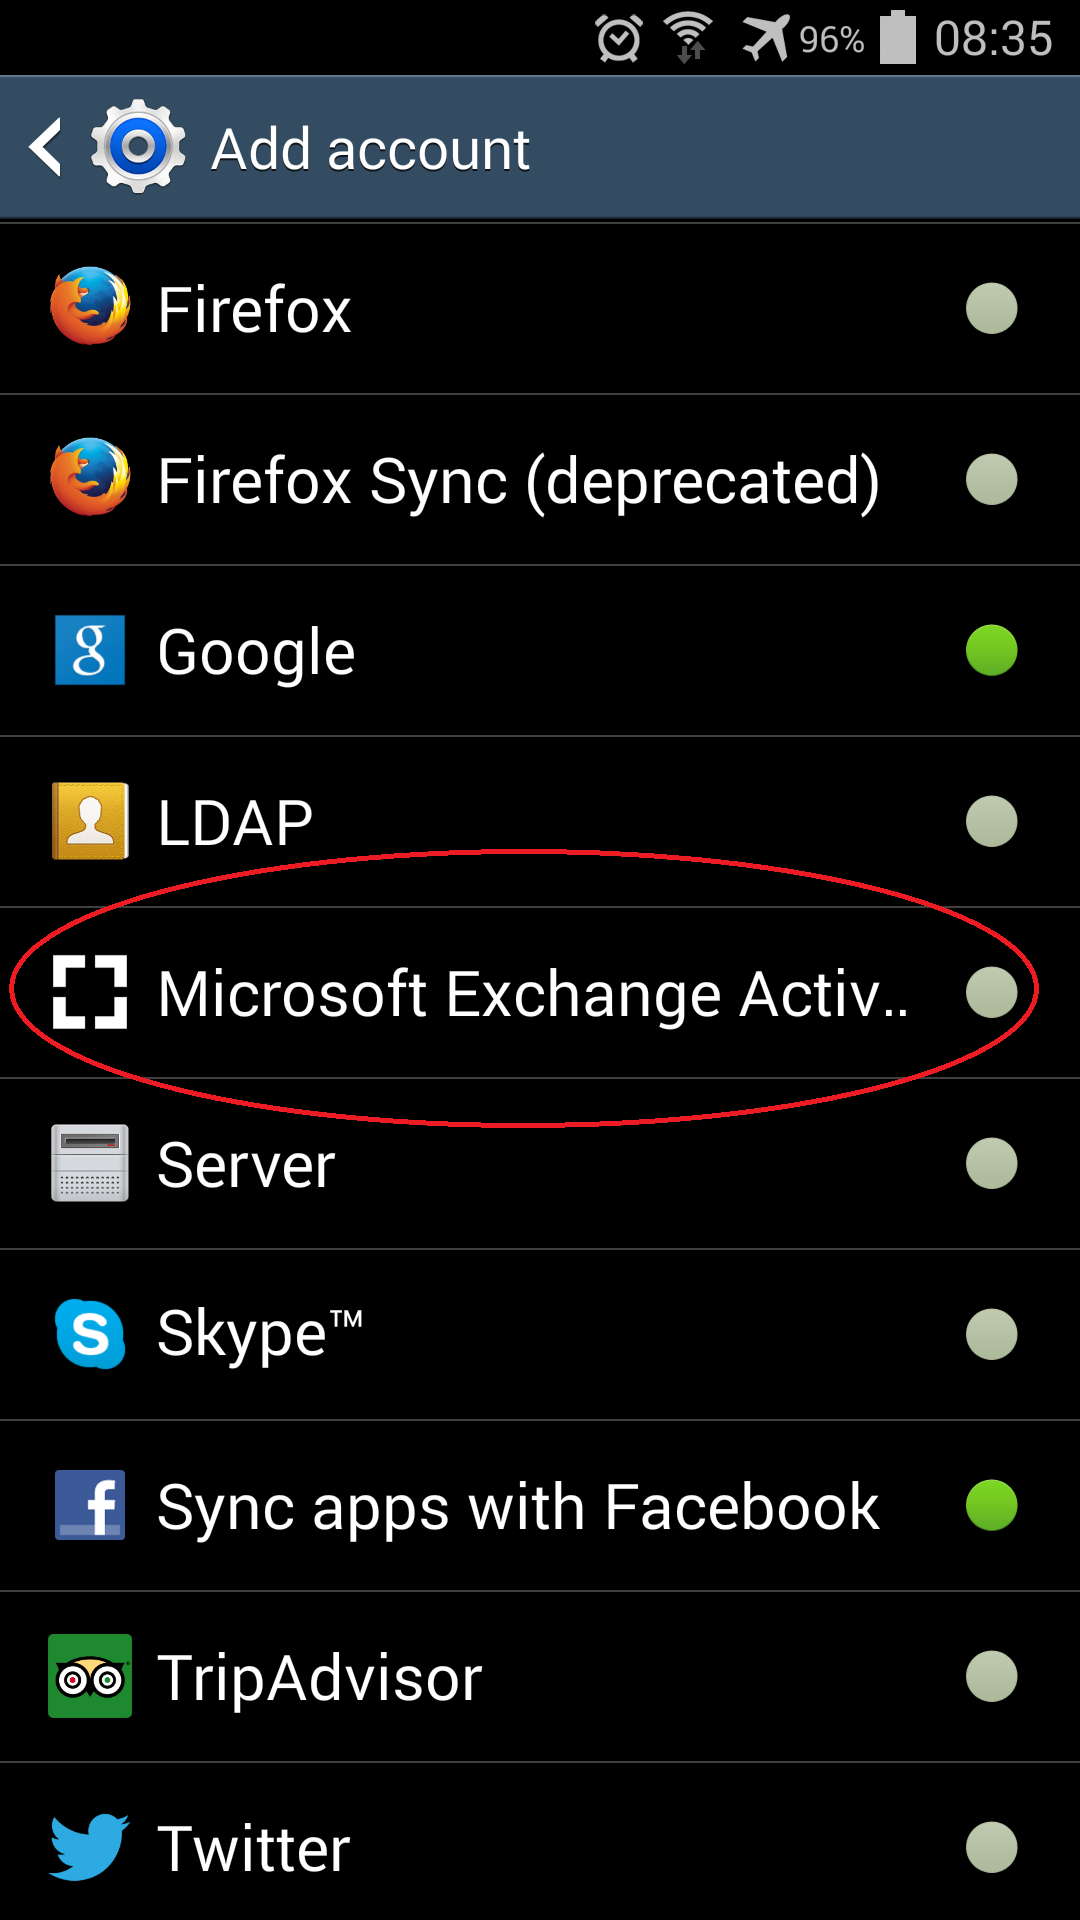 Phone Microsoft Exchange On Android Phone setup your zimbra account on an android phone or tablet division select microsoft exchange activesync for the type note earlier versions of this may be called corporat